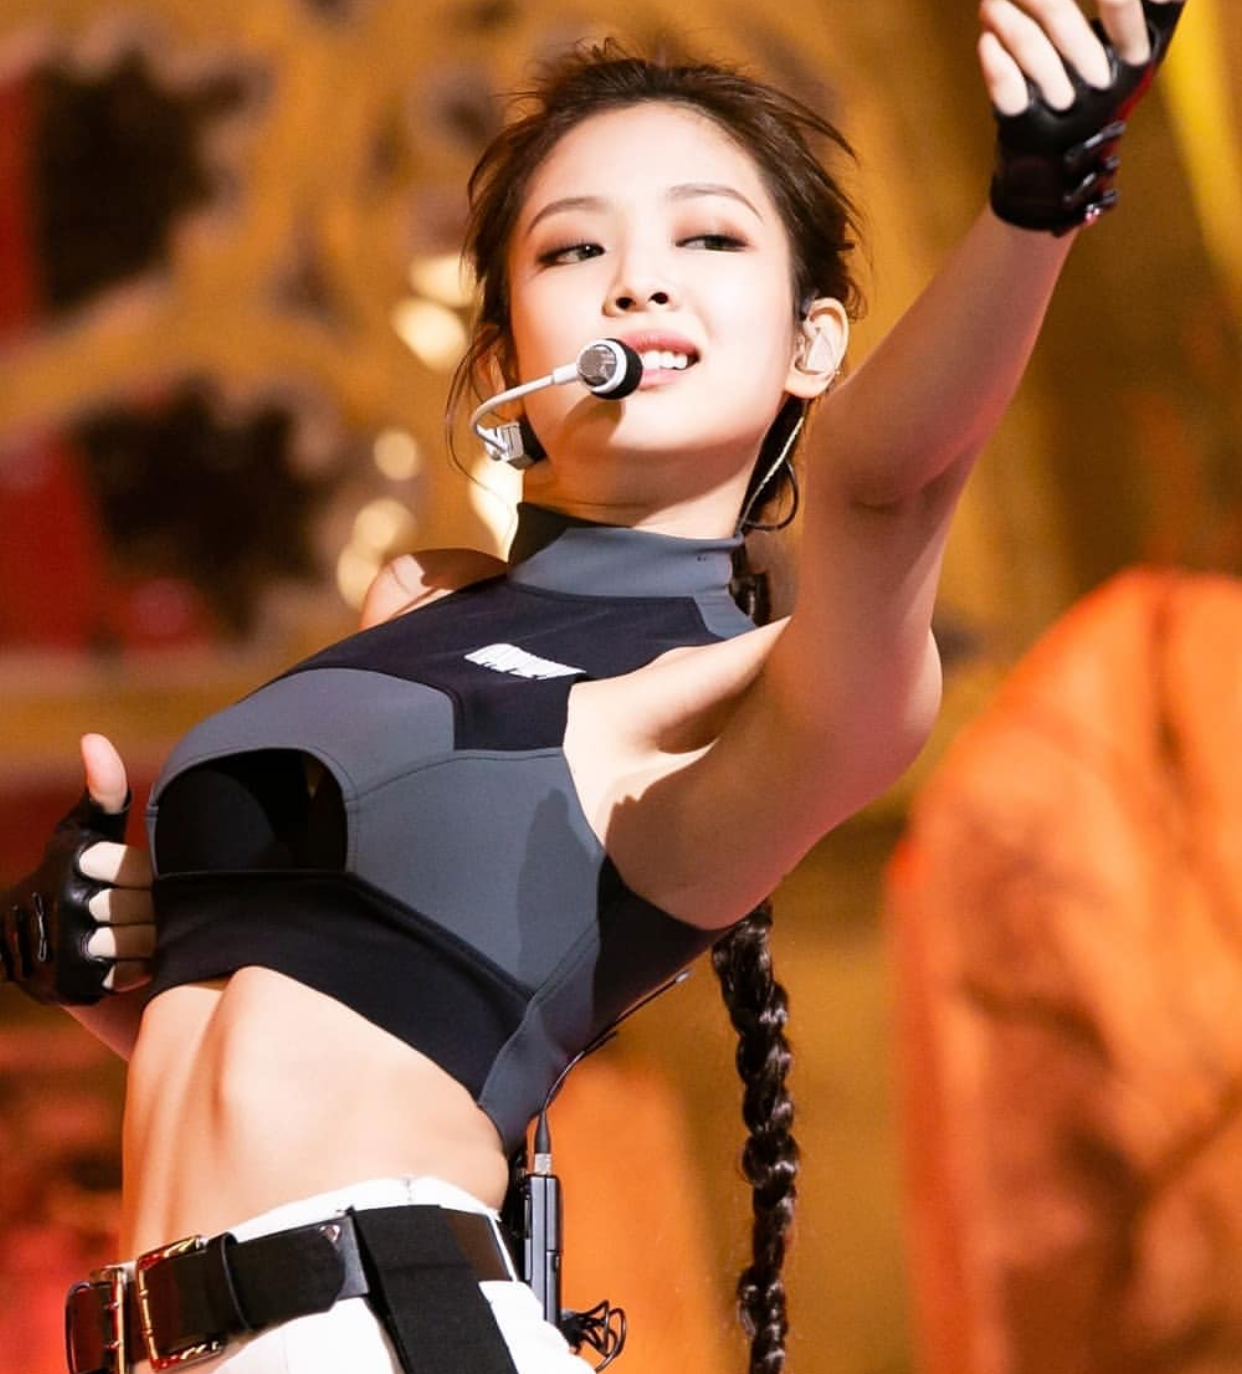 Jennie from Blackpink